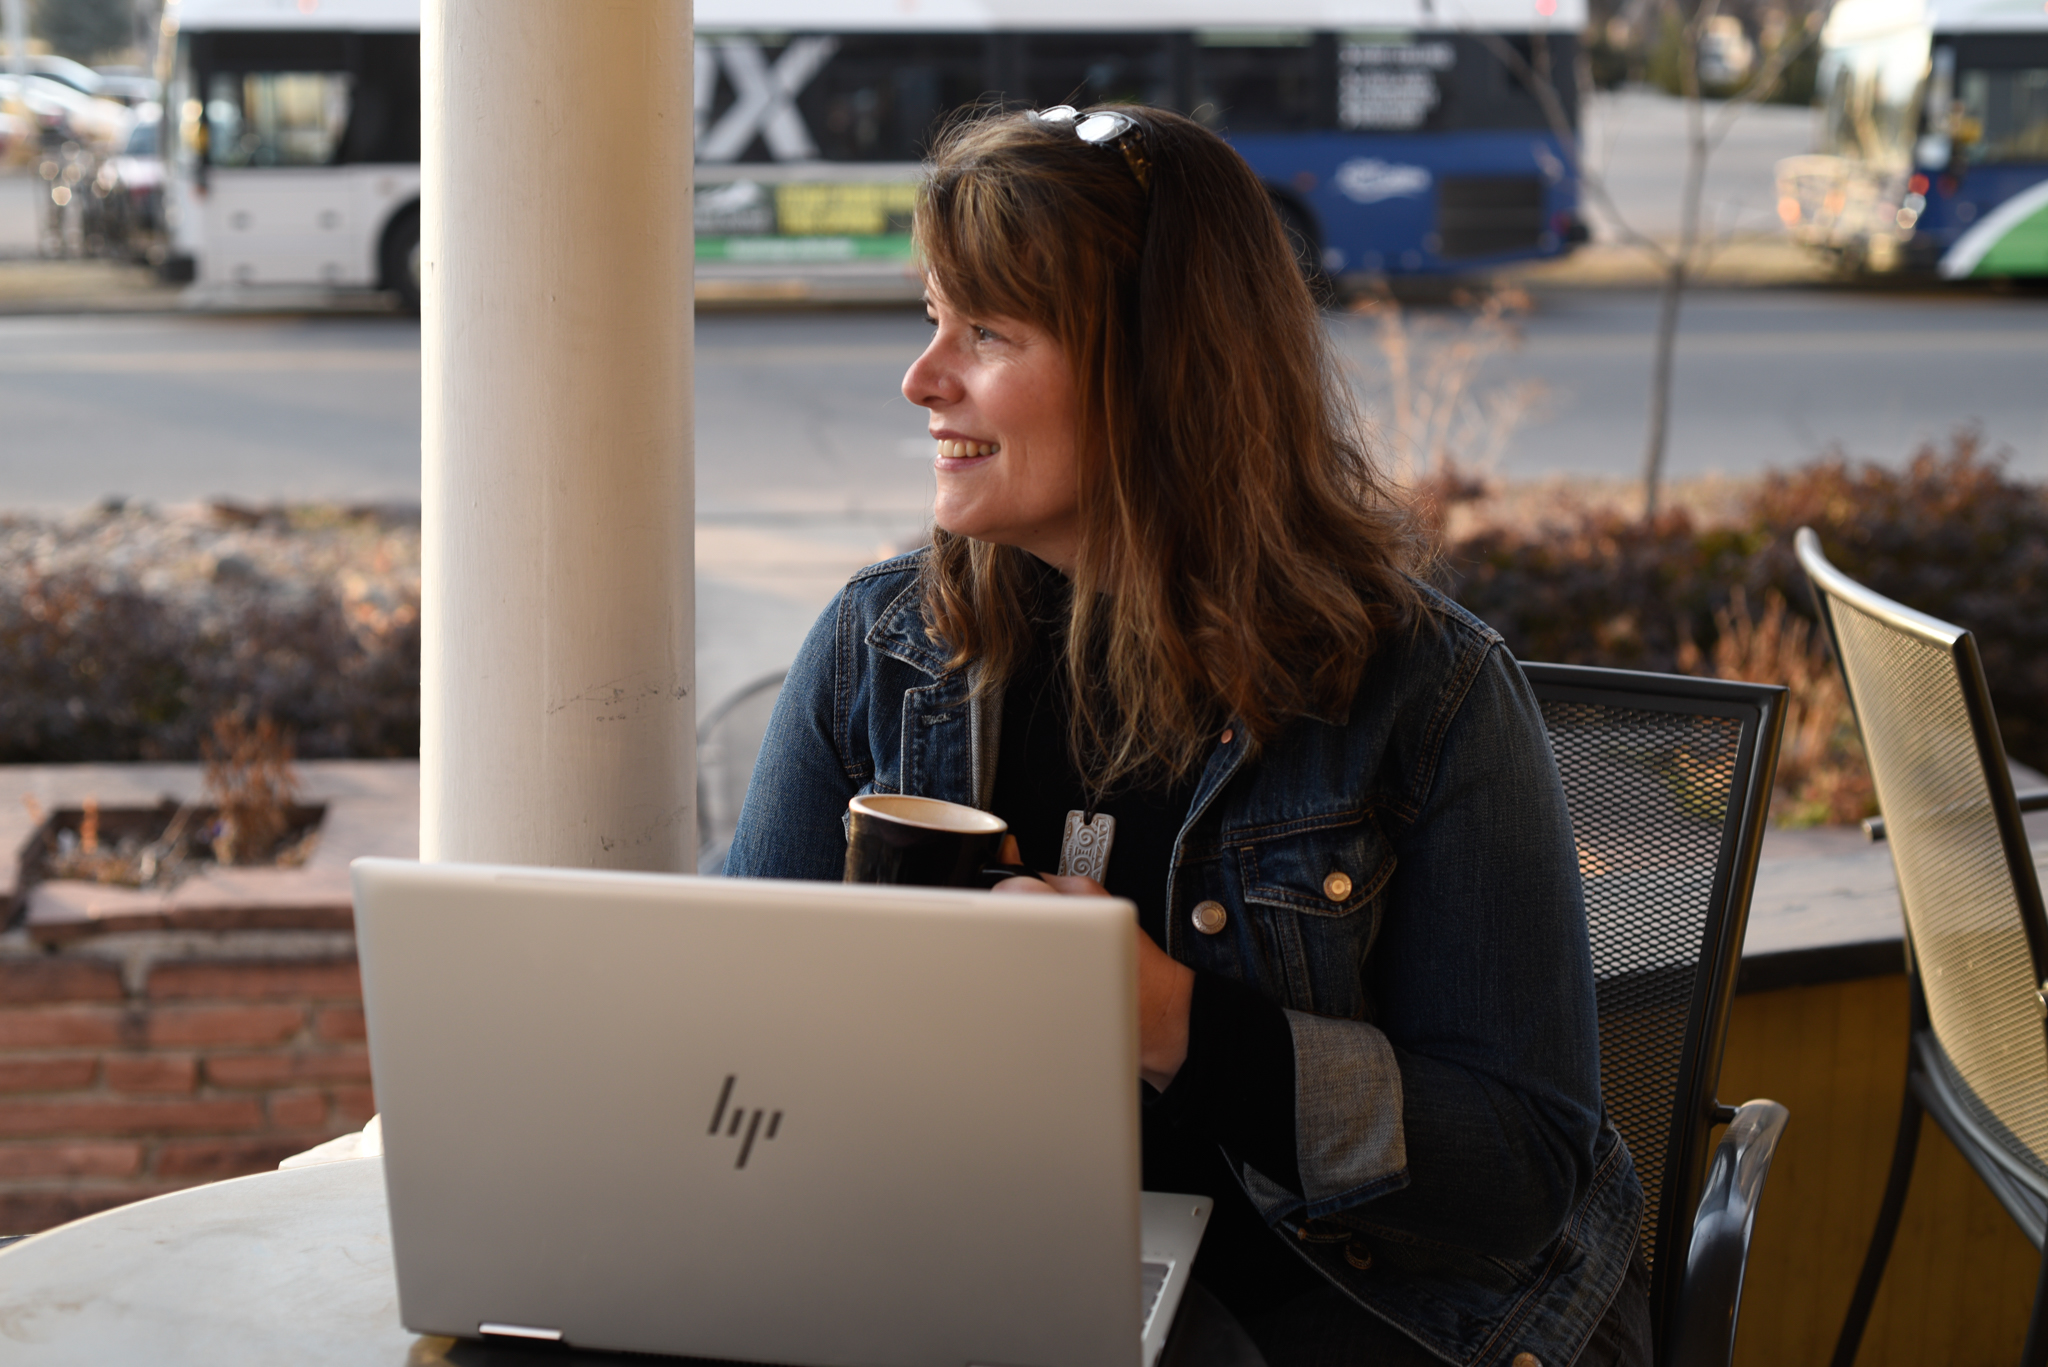 Crushing it on LinkedIn biography image of woman at table with laptop